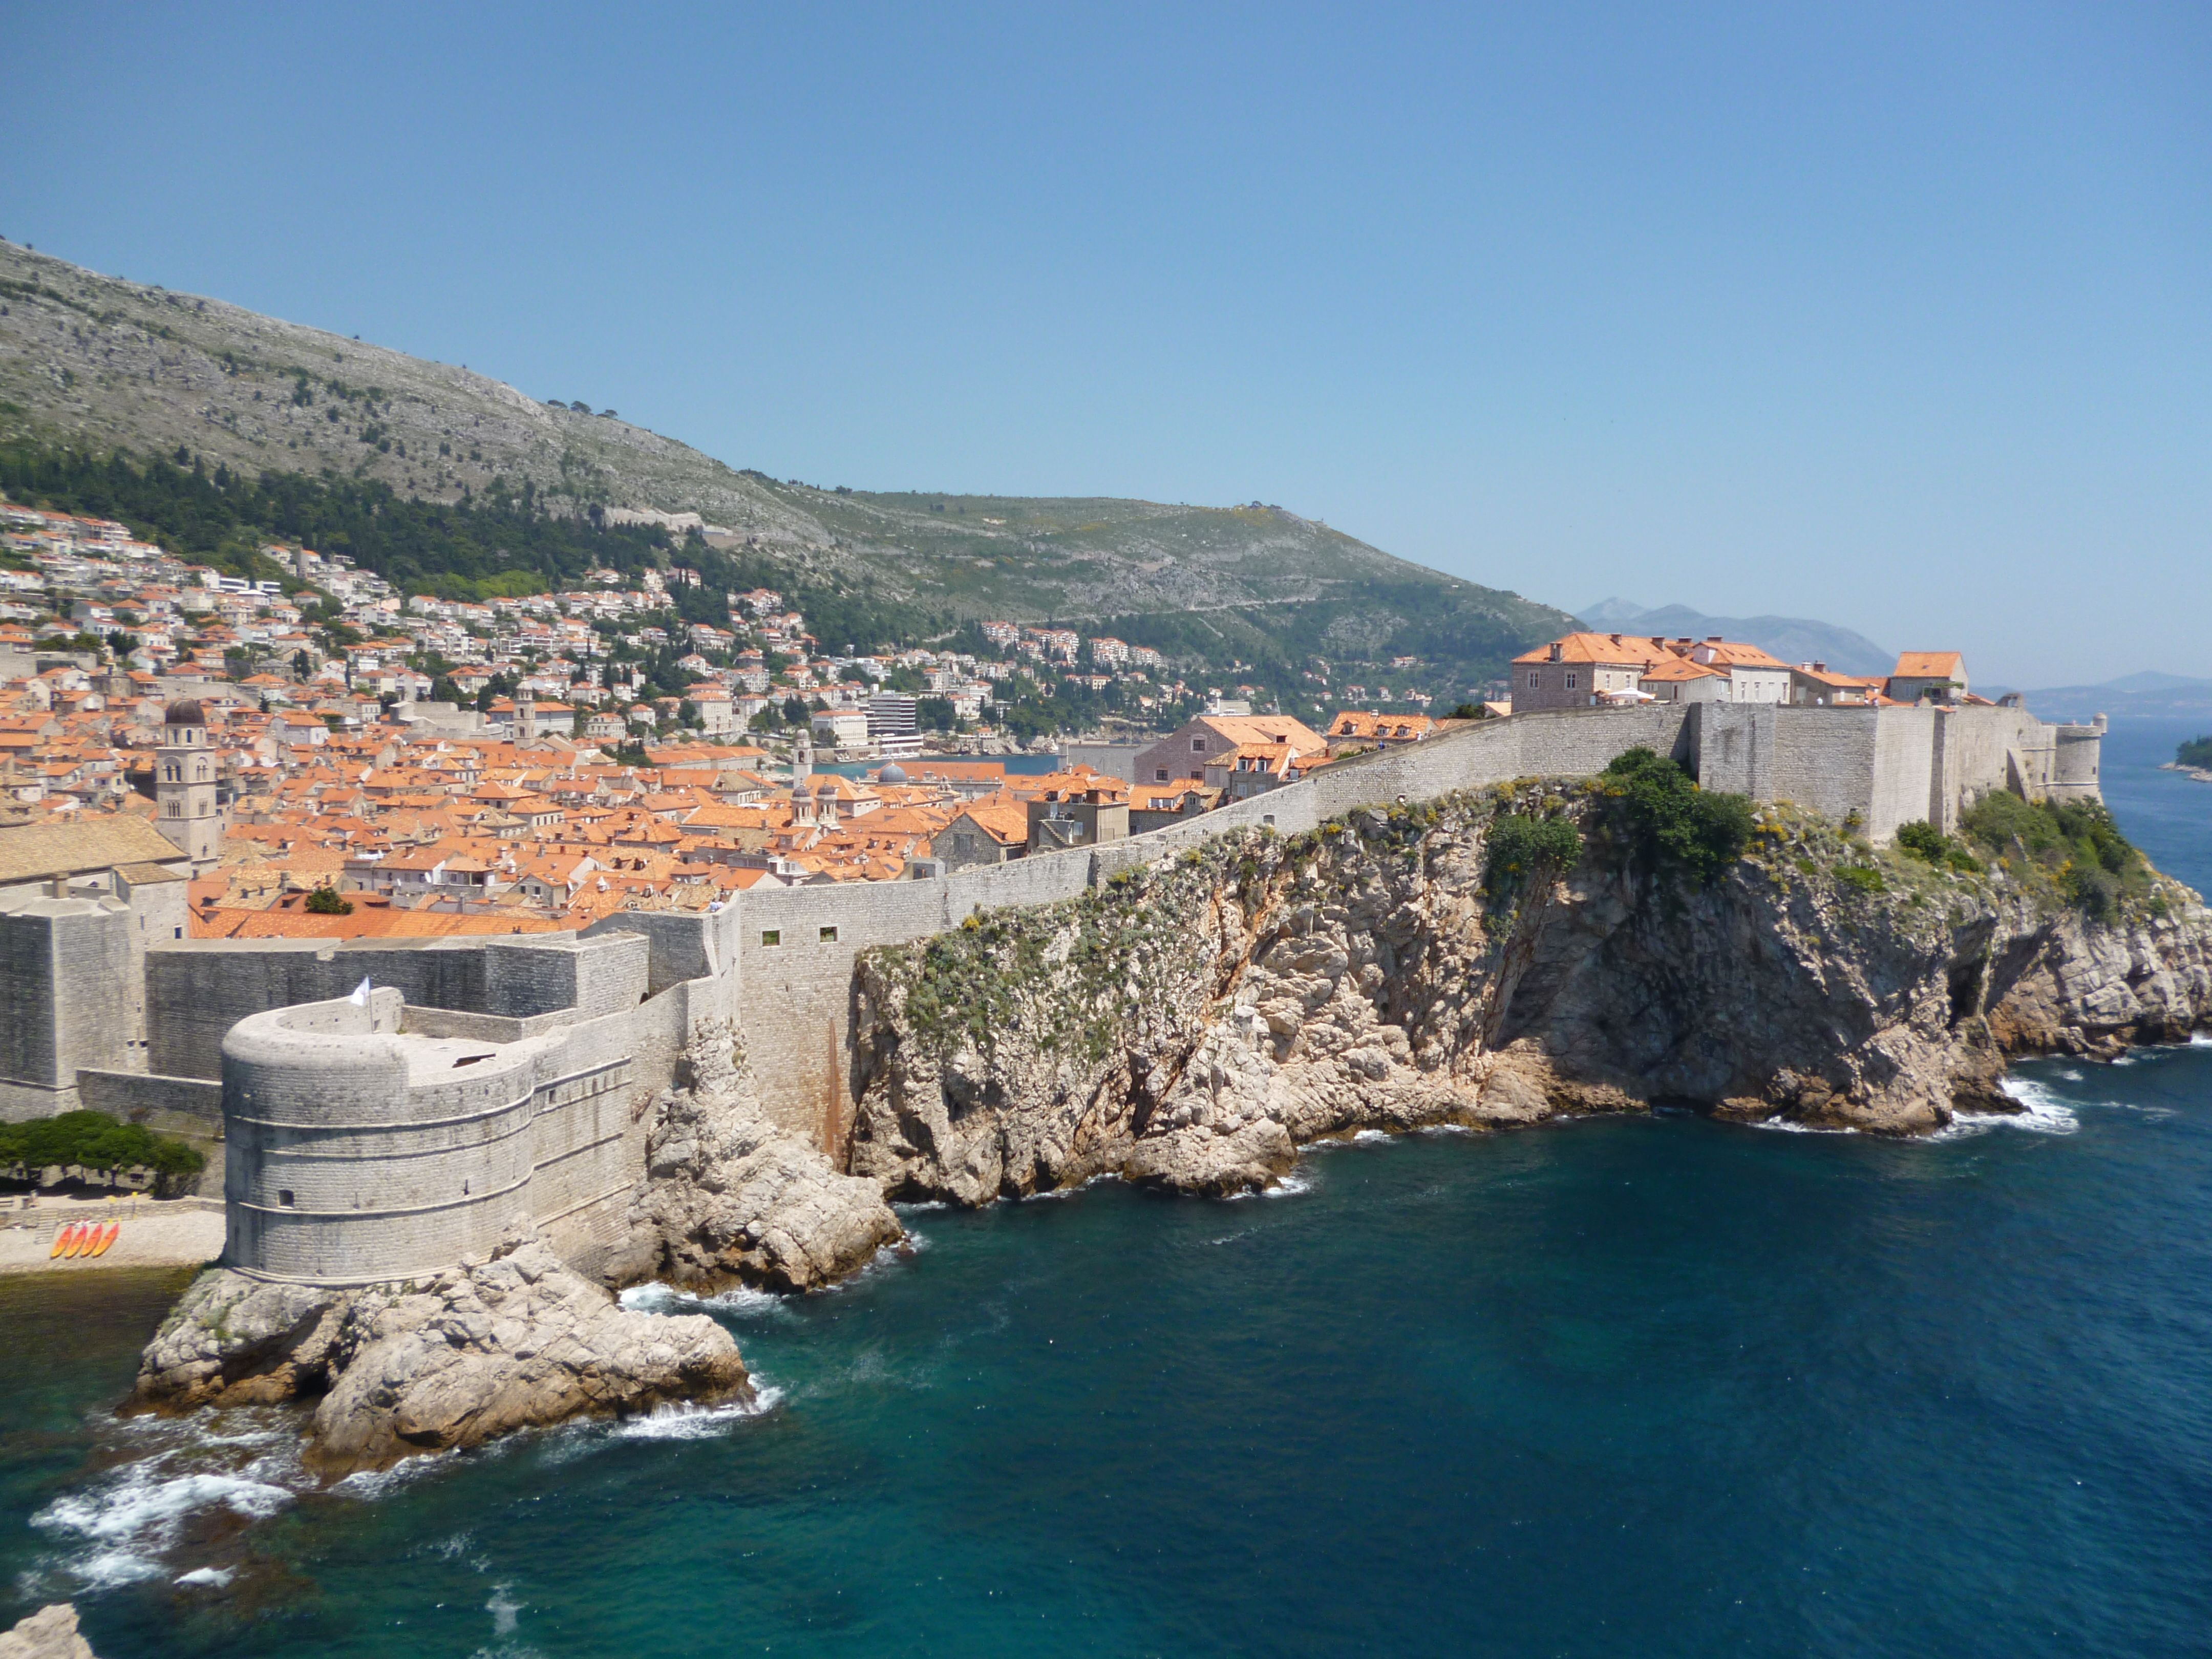 Dubrovnik Croatia This Was Taken From The Fort Looking Back At The Walled City Dubrovnik